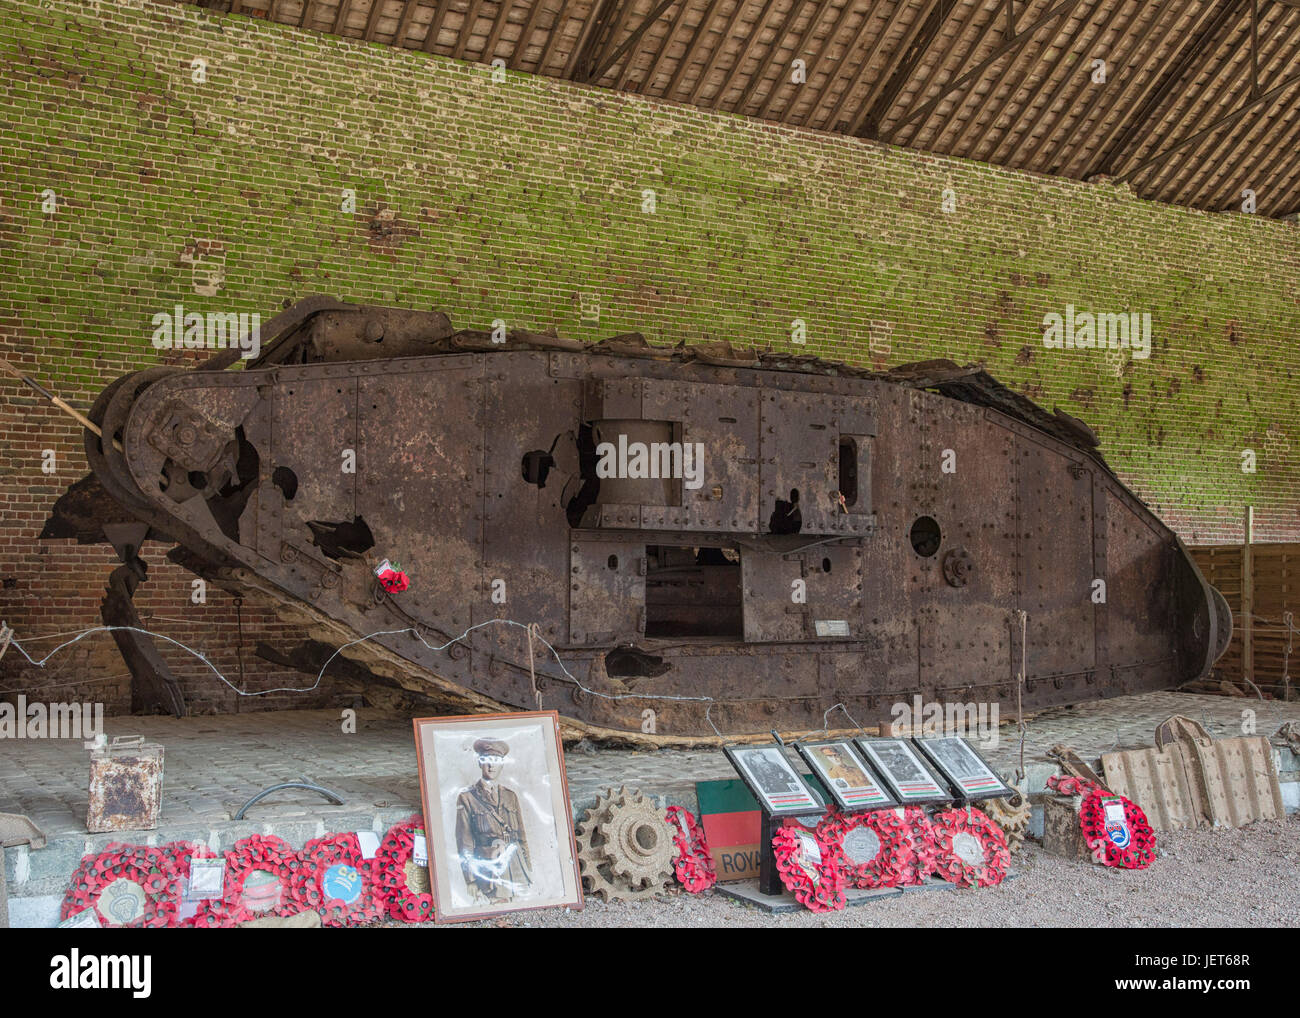 Mark IV tank Deborah which took part in the Battle of Cambrai - Stock Image